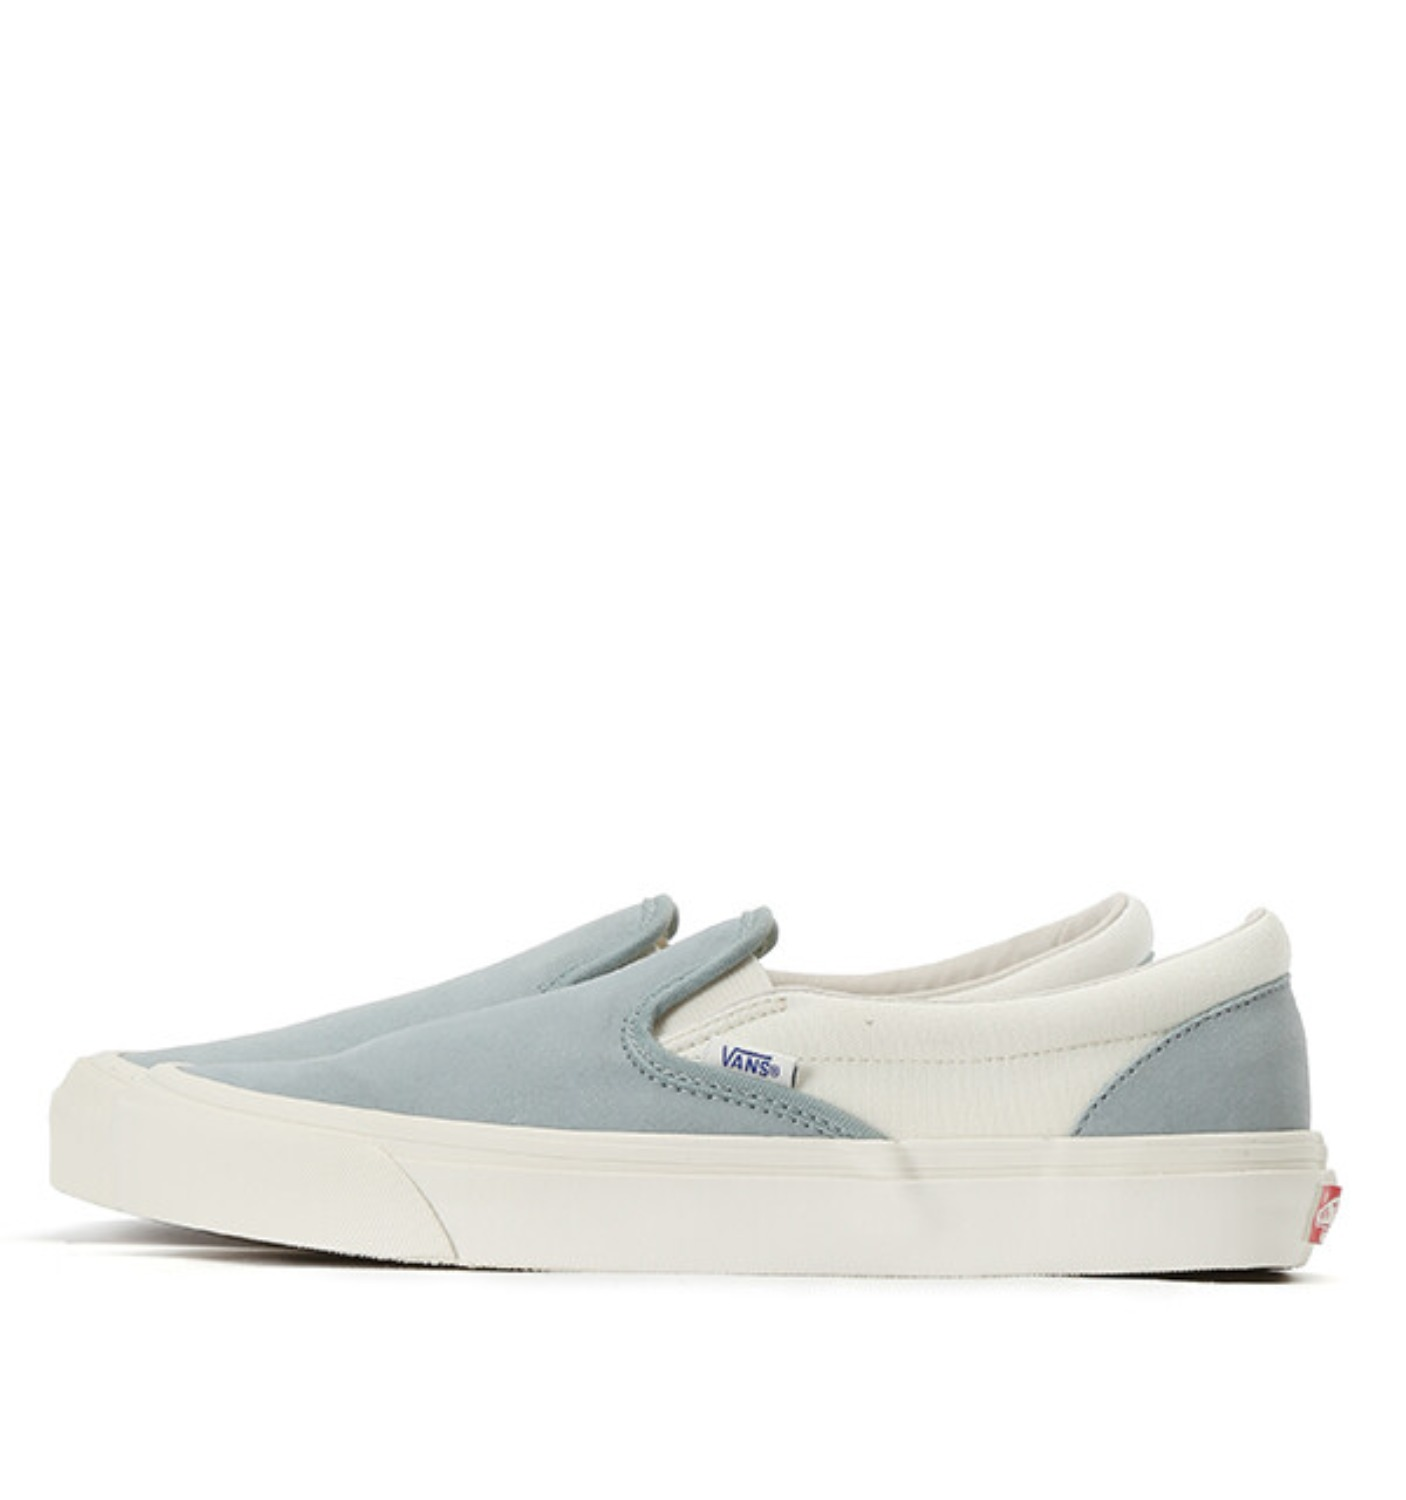 OG CLASSIC SLIP-ON LX(SUEDE/CANVAS) SLATE/MARSHMALLOW